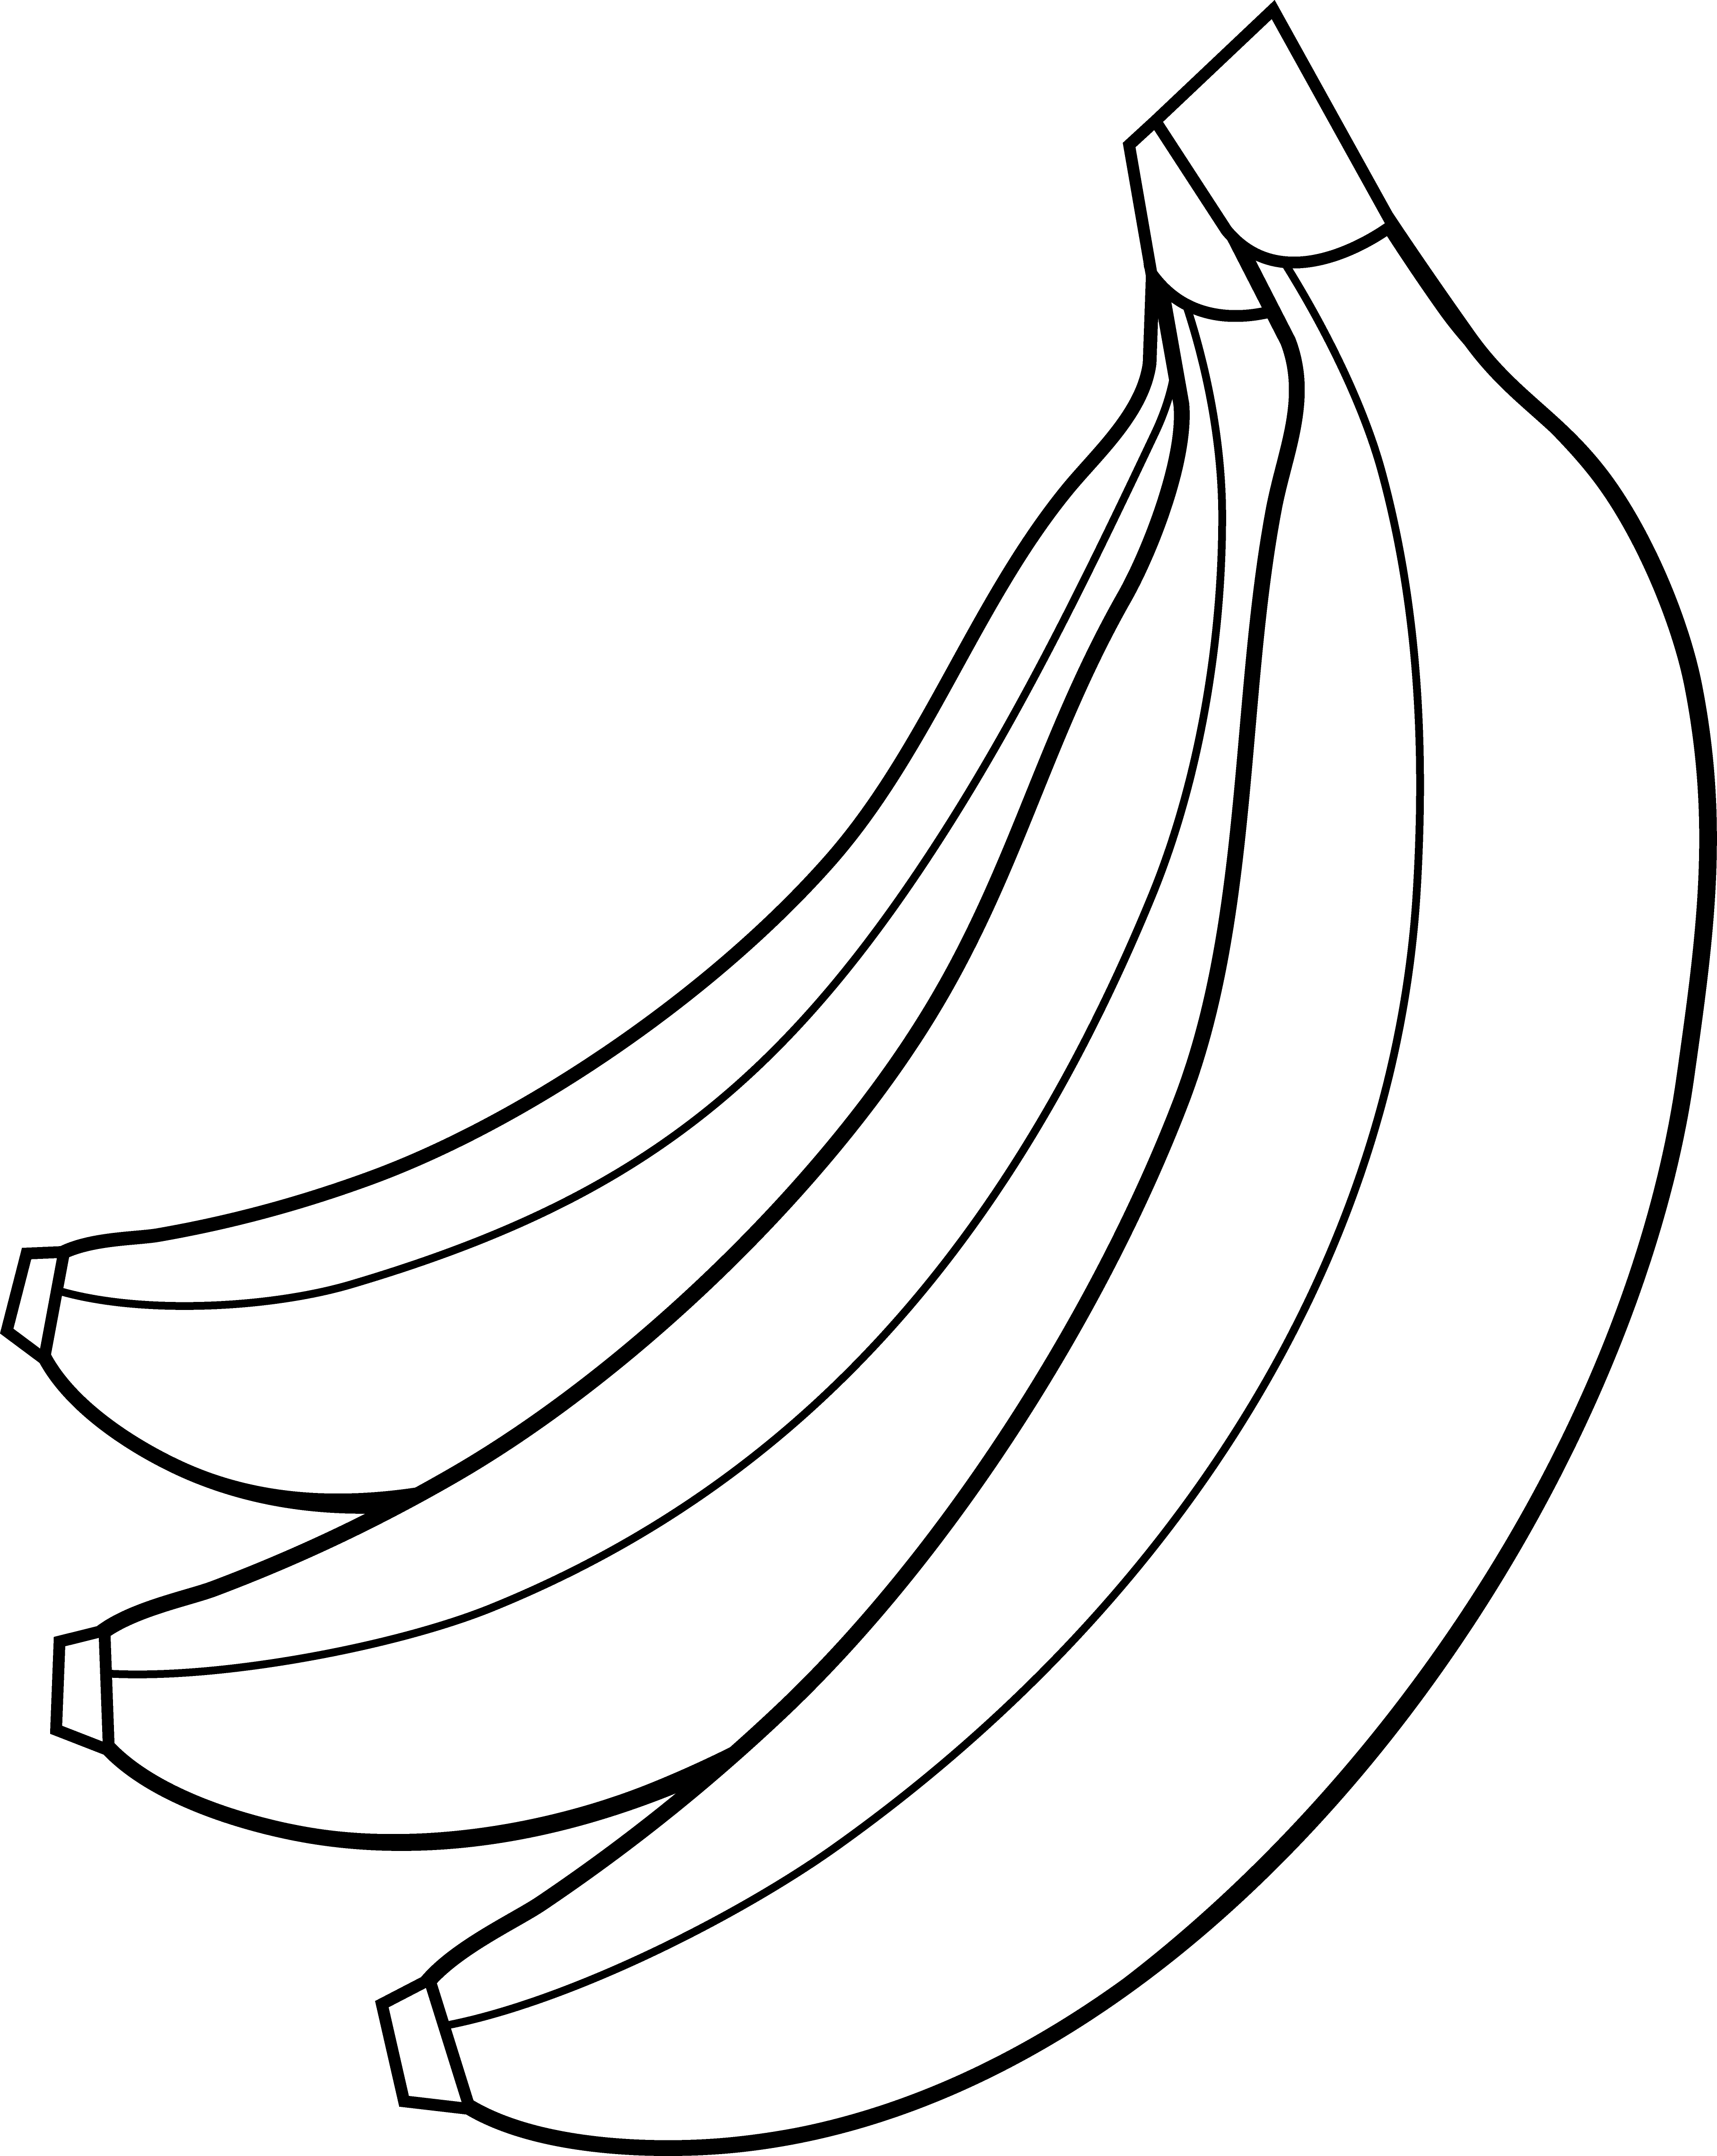 3631x4559 Colorable Bunch Of Bananas